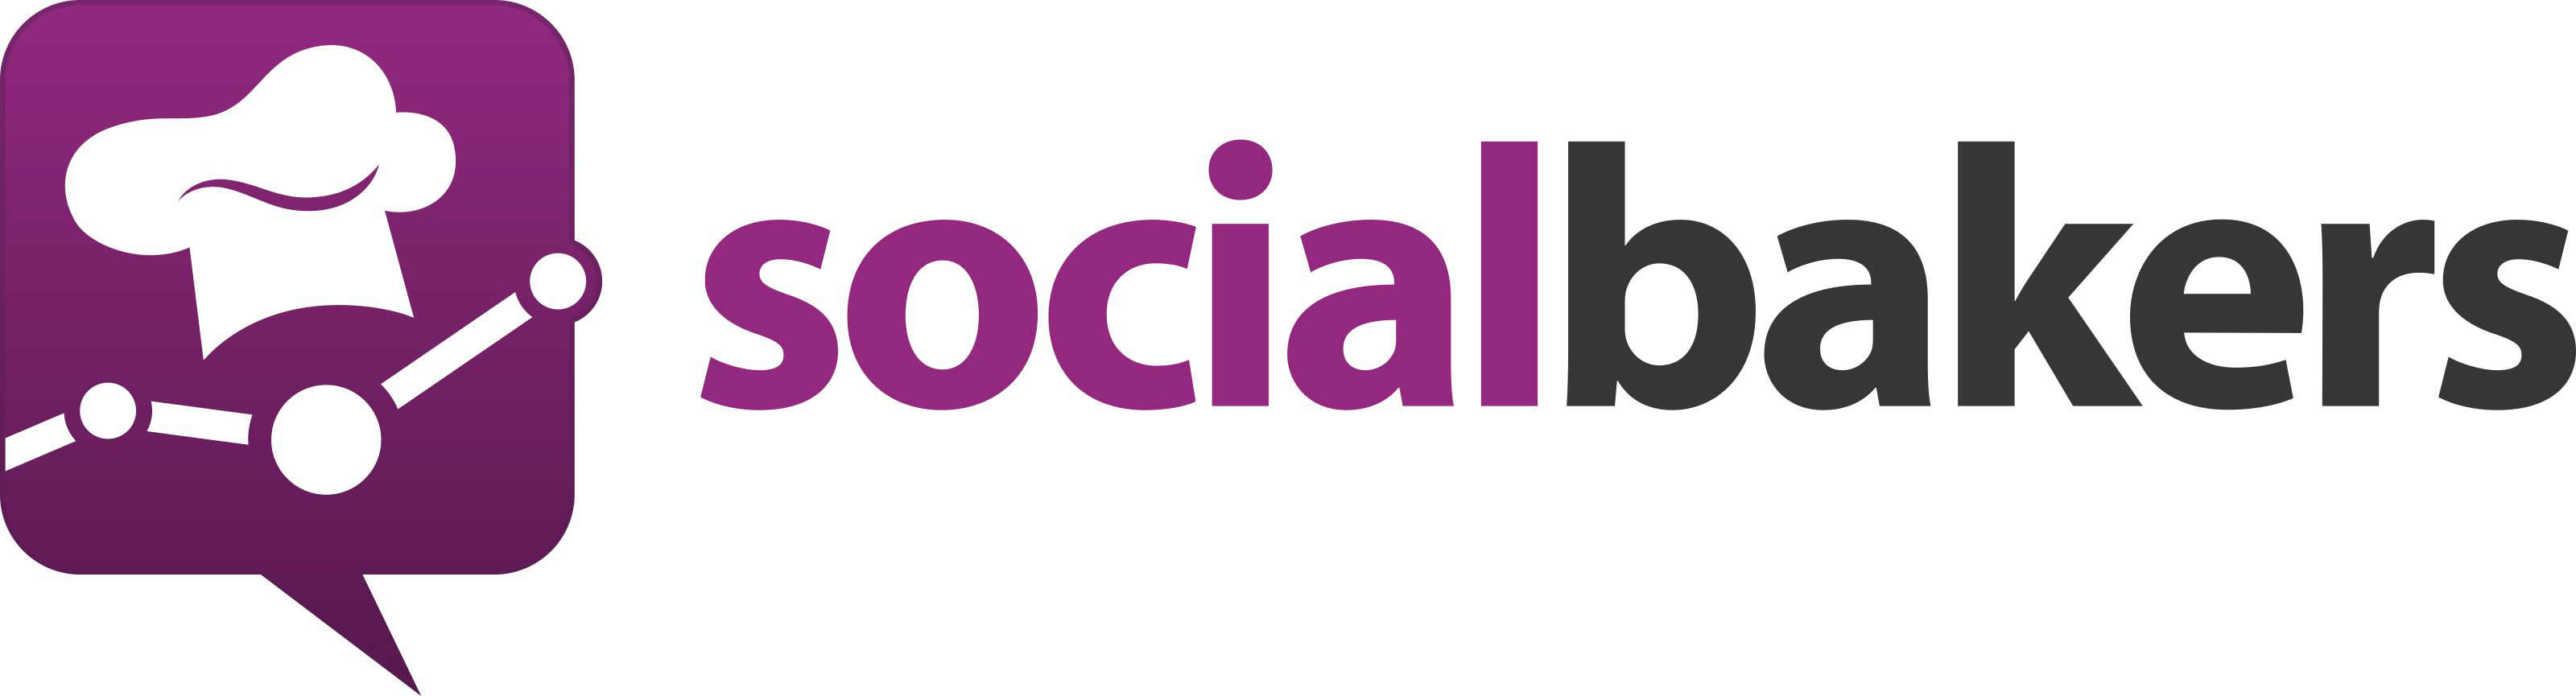 Social Media Analytics Tools Socialbakers Icon